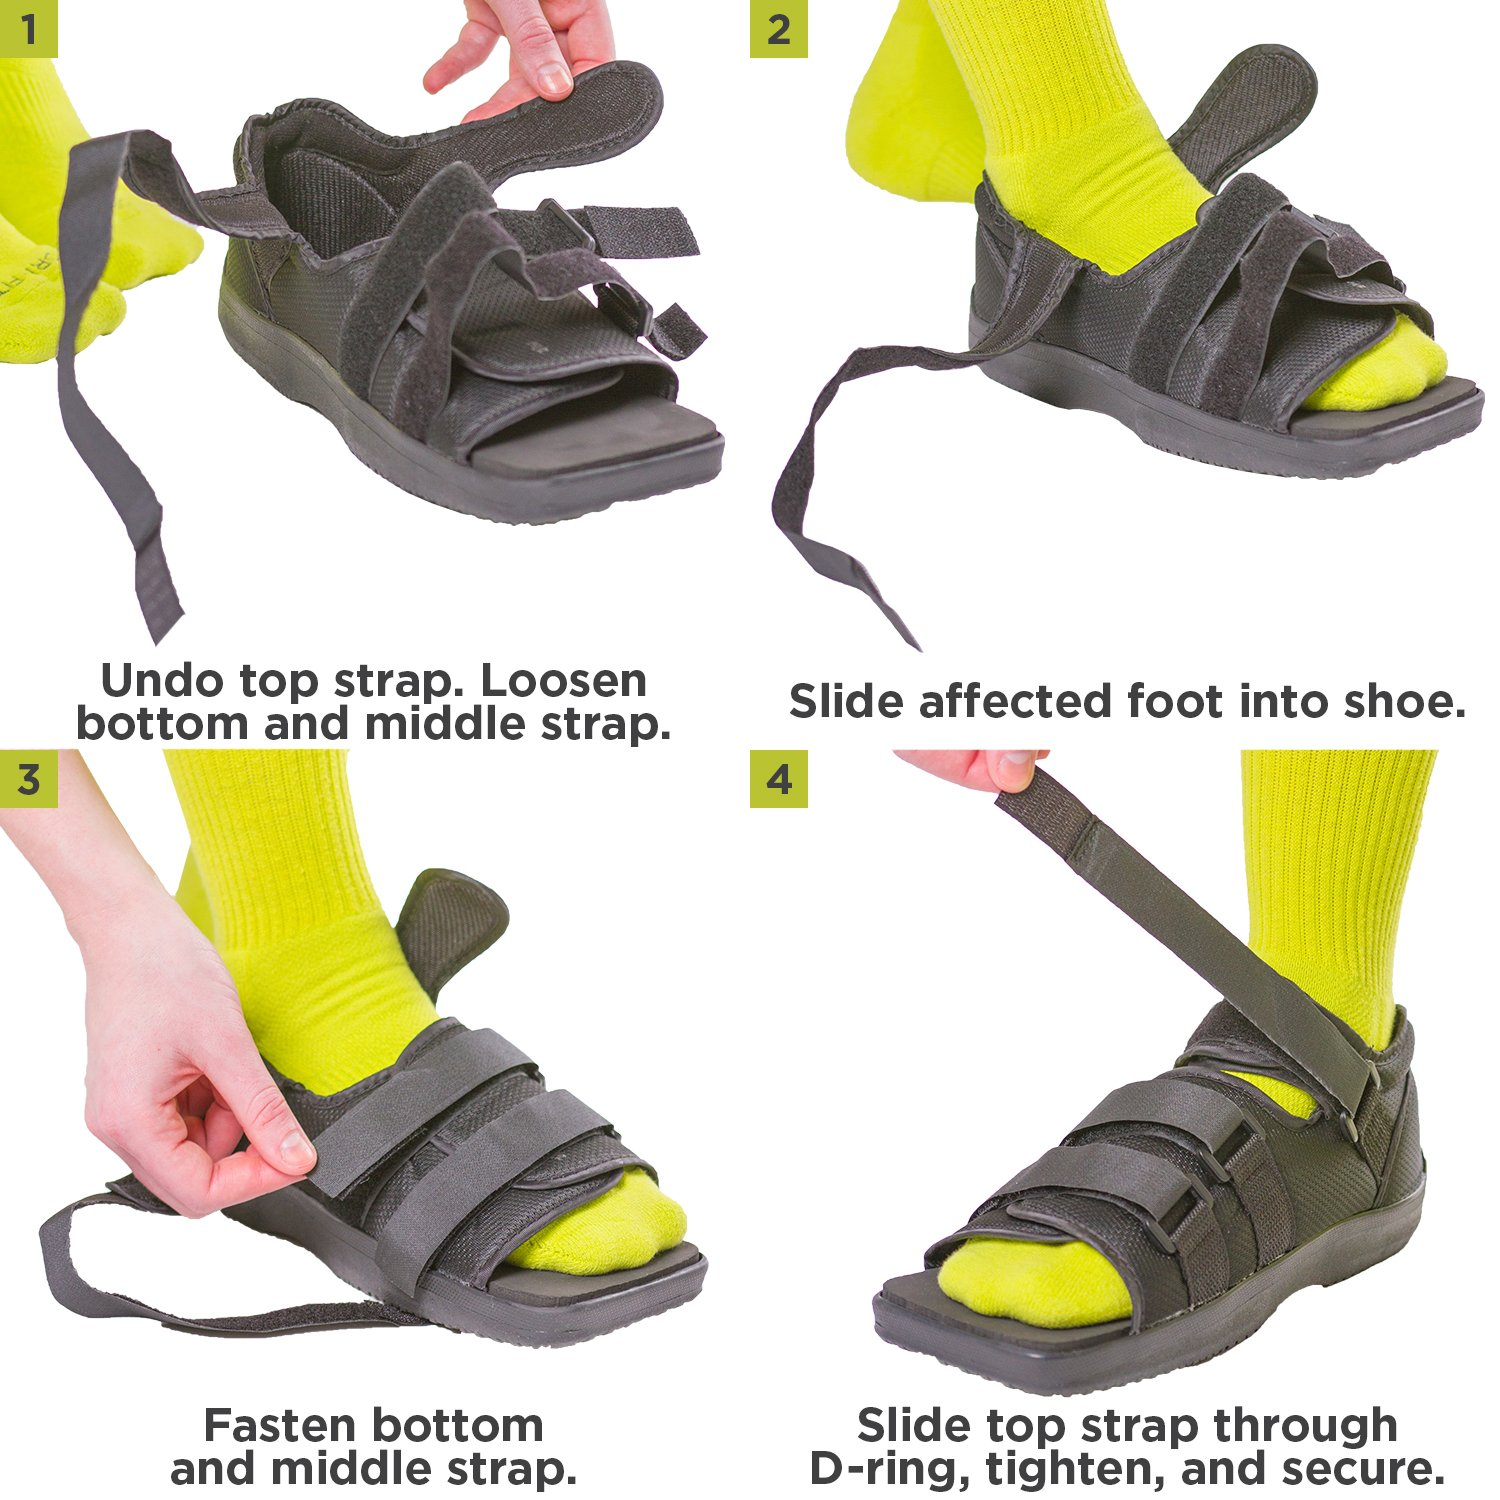 BraceAbility Post-op Shoe for Broken Foot or Toes | Medical / Surgical Walking Boot Cast, Stress Fracture Brace & Orthopedic Sandal with Hard Sole (MEDIUM - FEMALE)